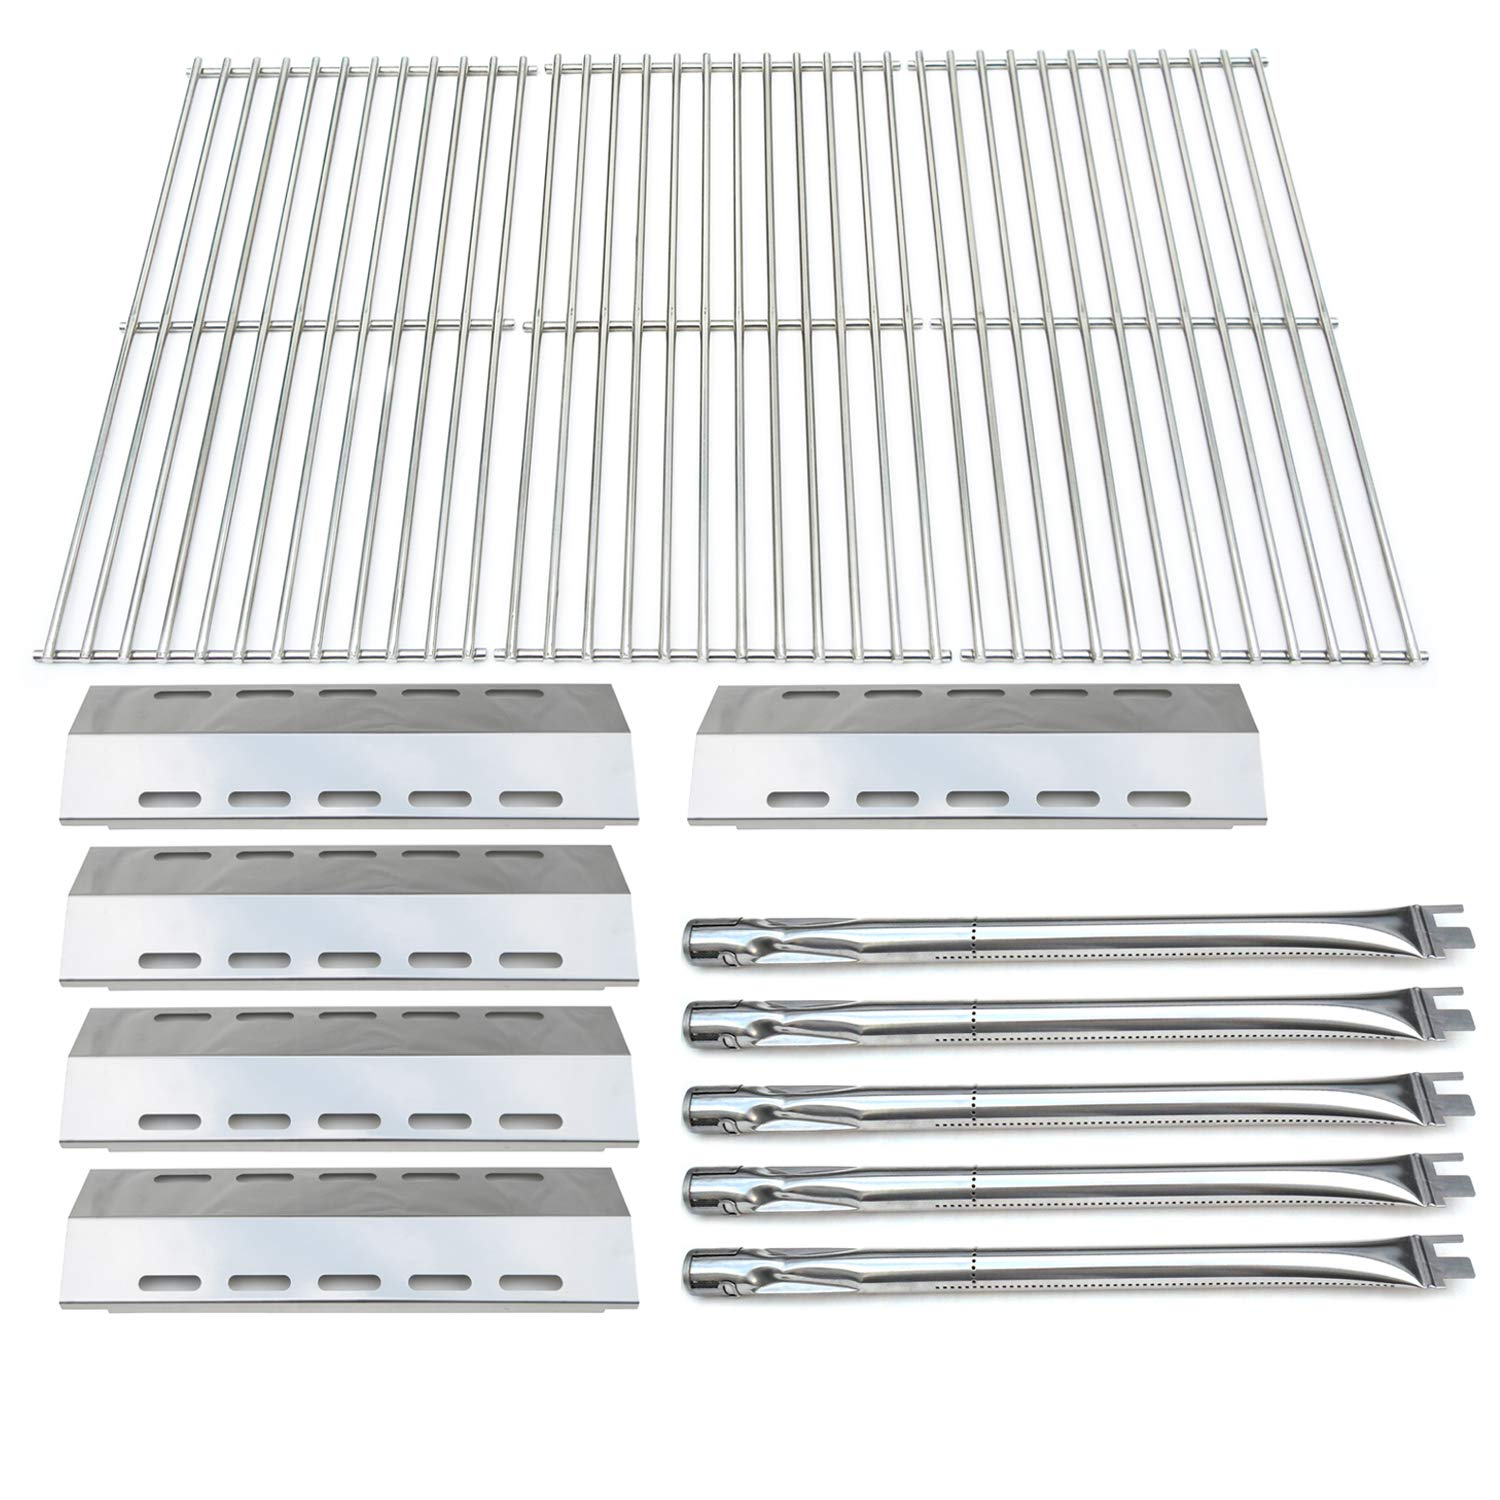 Direct store Parts Kit DG210 Replacement Ducane 30400042,30400043,30558501 Gas Grill Burners,Heat Plates,Cooking Grid (SS Burner + SS Heat Plate + Solid Stainless Steel Cooking Grid)